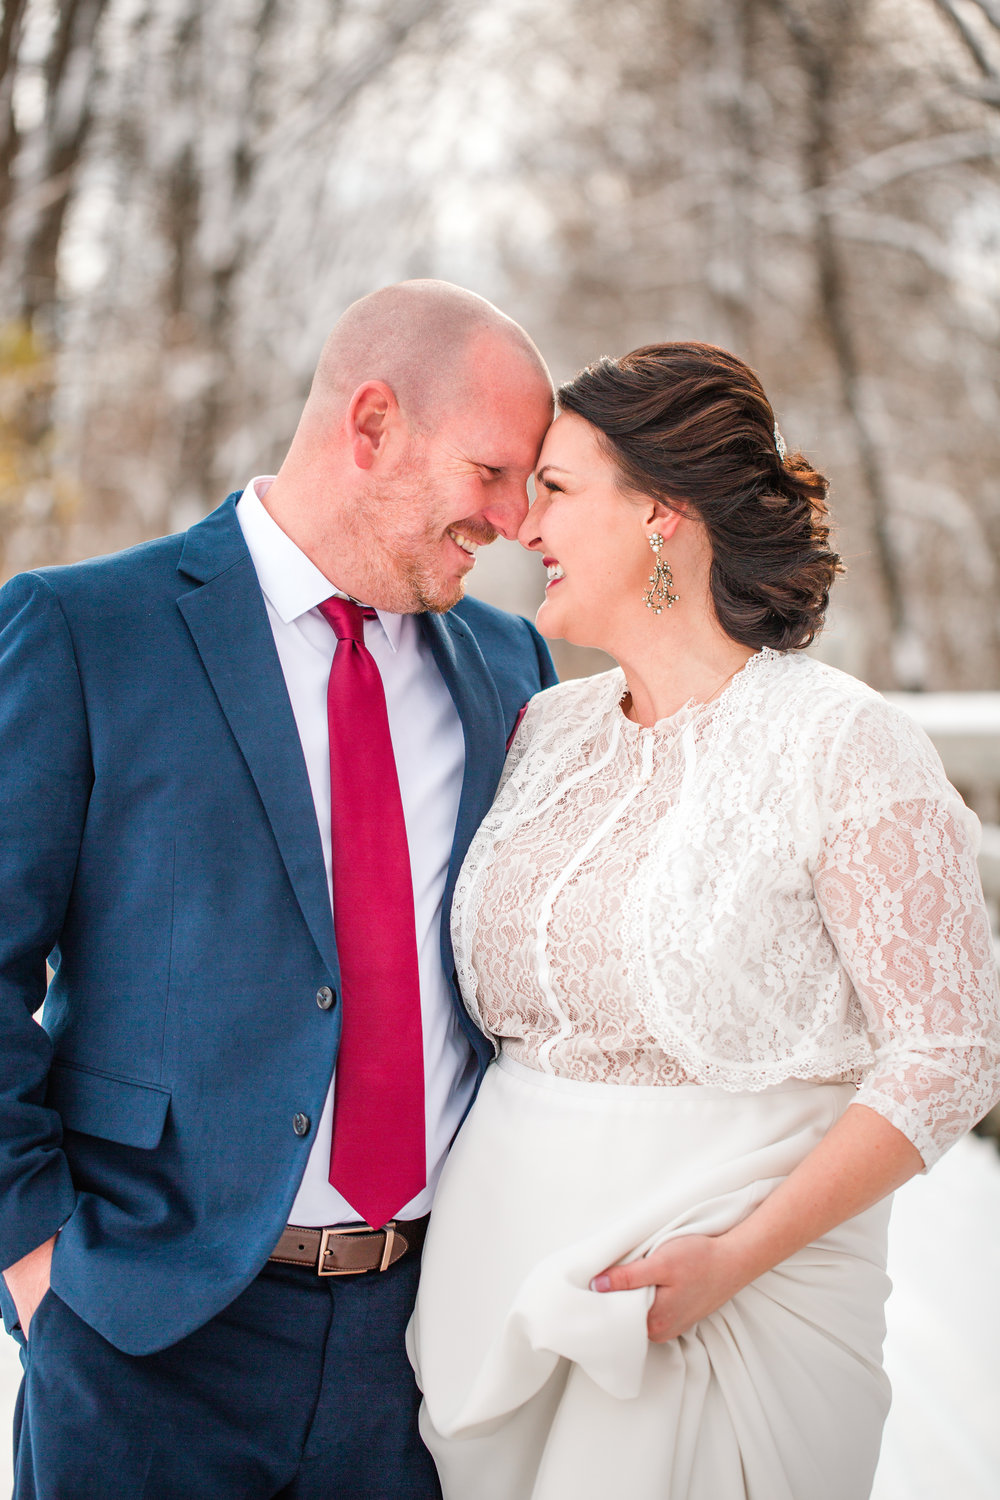 romantic winter wedding photography midwest iowa wedding pioneer